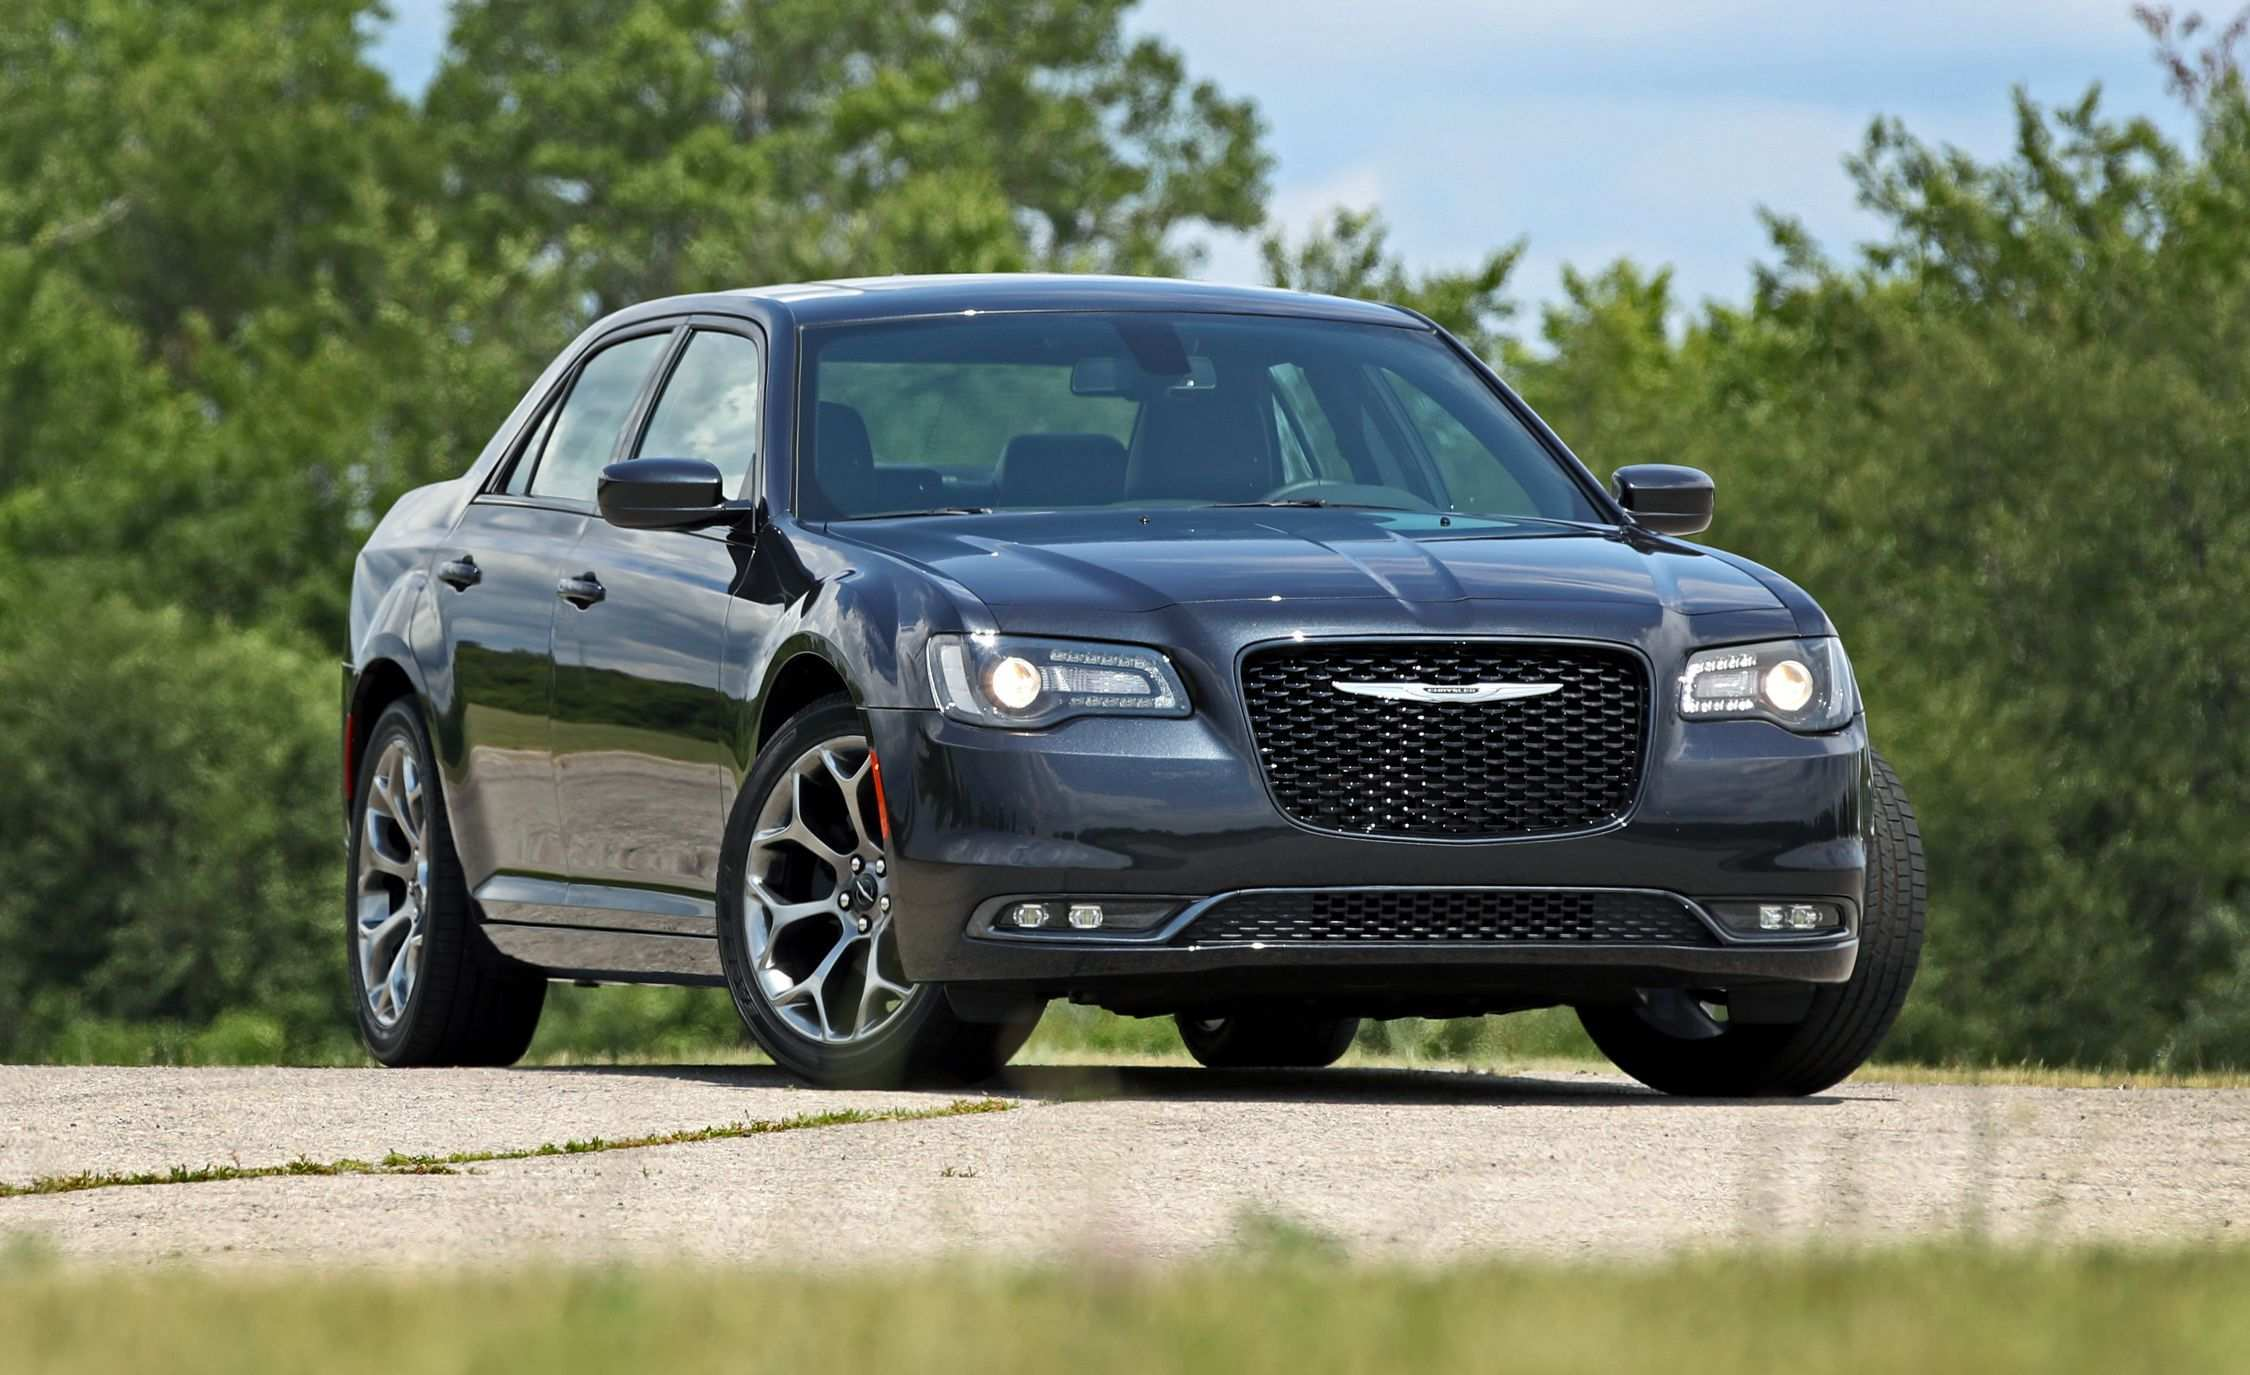 45 Concept of 2019 Chrysler 300 Review Rumors with 2019 Chrysler 300 Review